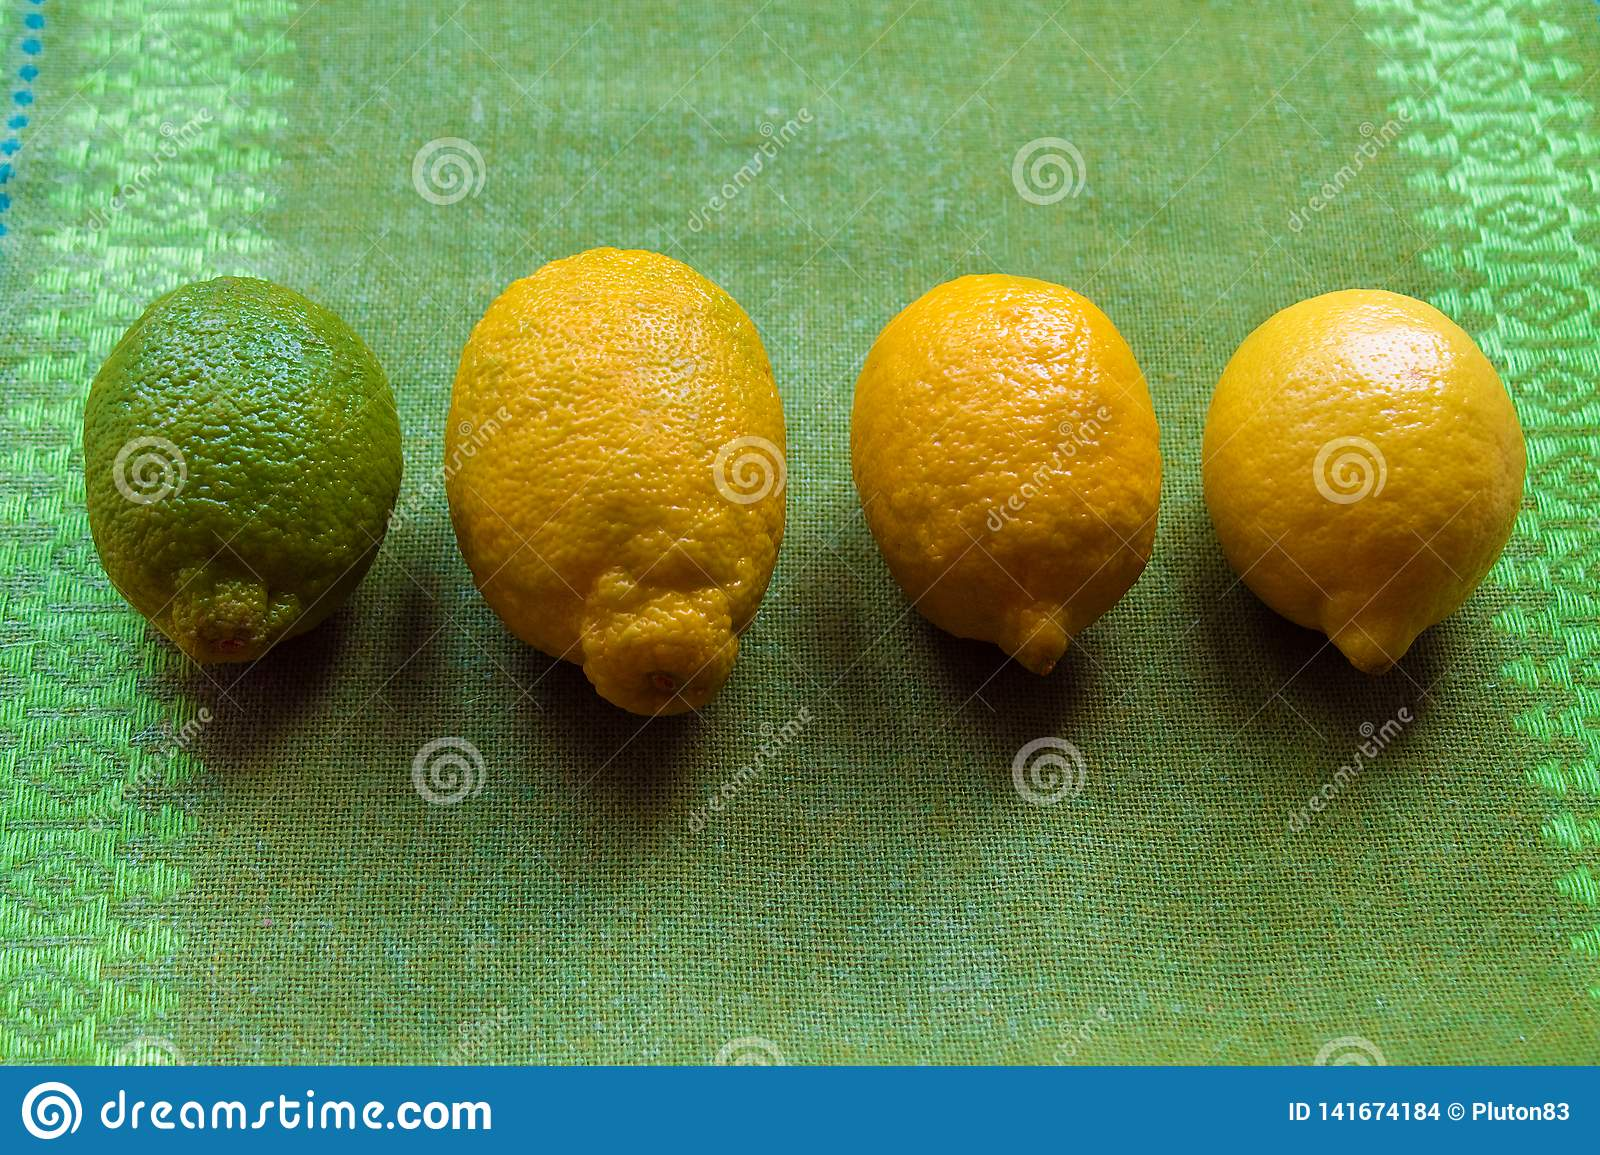 Four lemons of different maturity lie on a table or on a white background